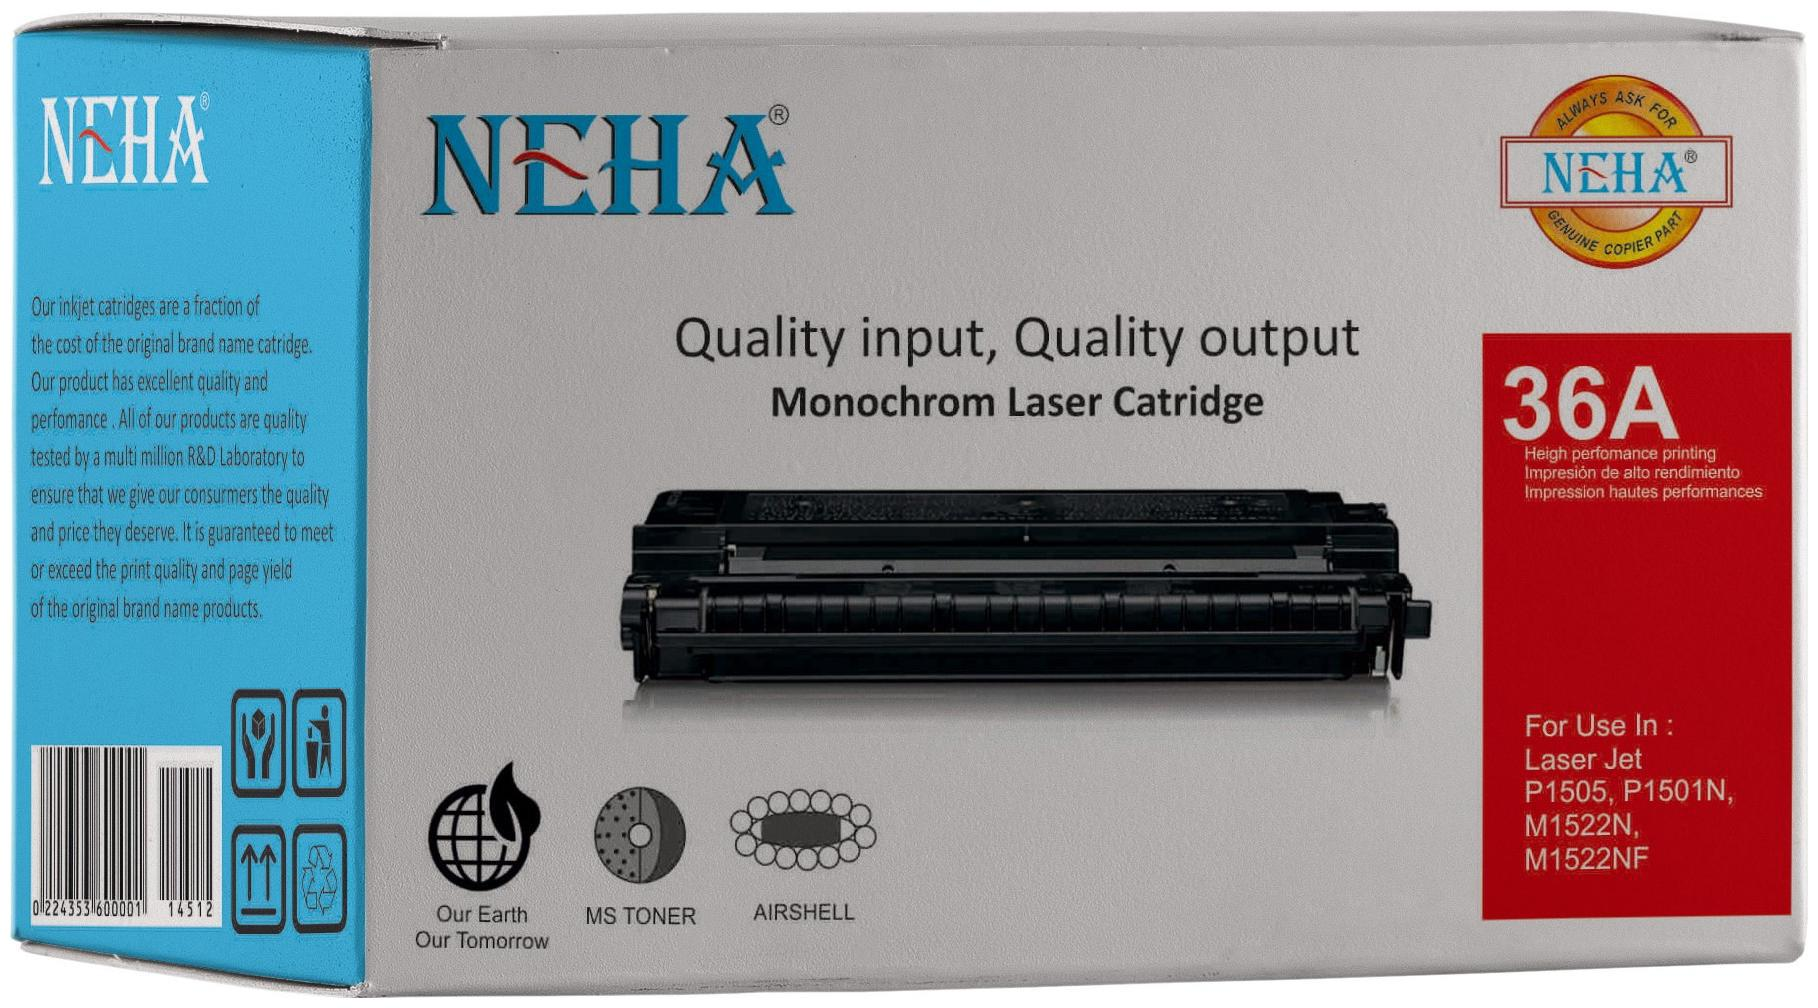 Neha 36A Compatible Laser Toner Cartridge for HP Laserjet   P1505, M1120 and M1522 MFP